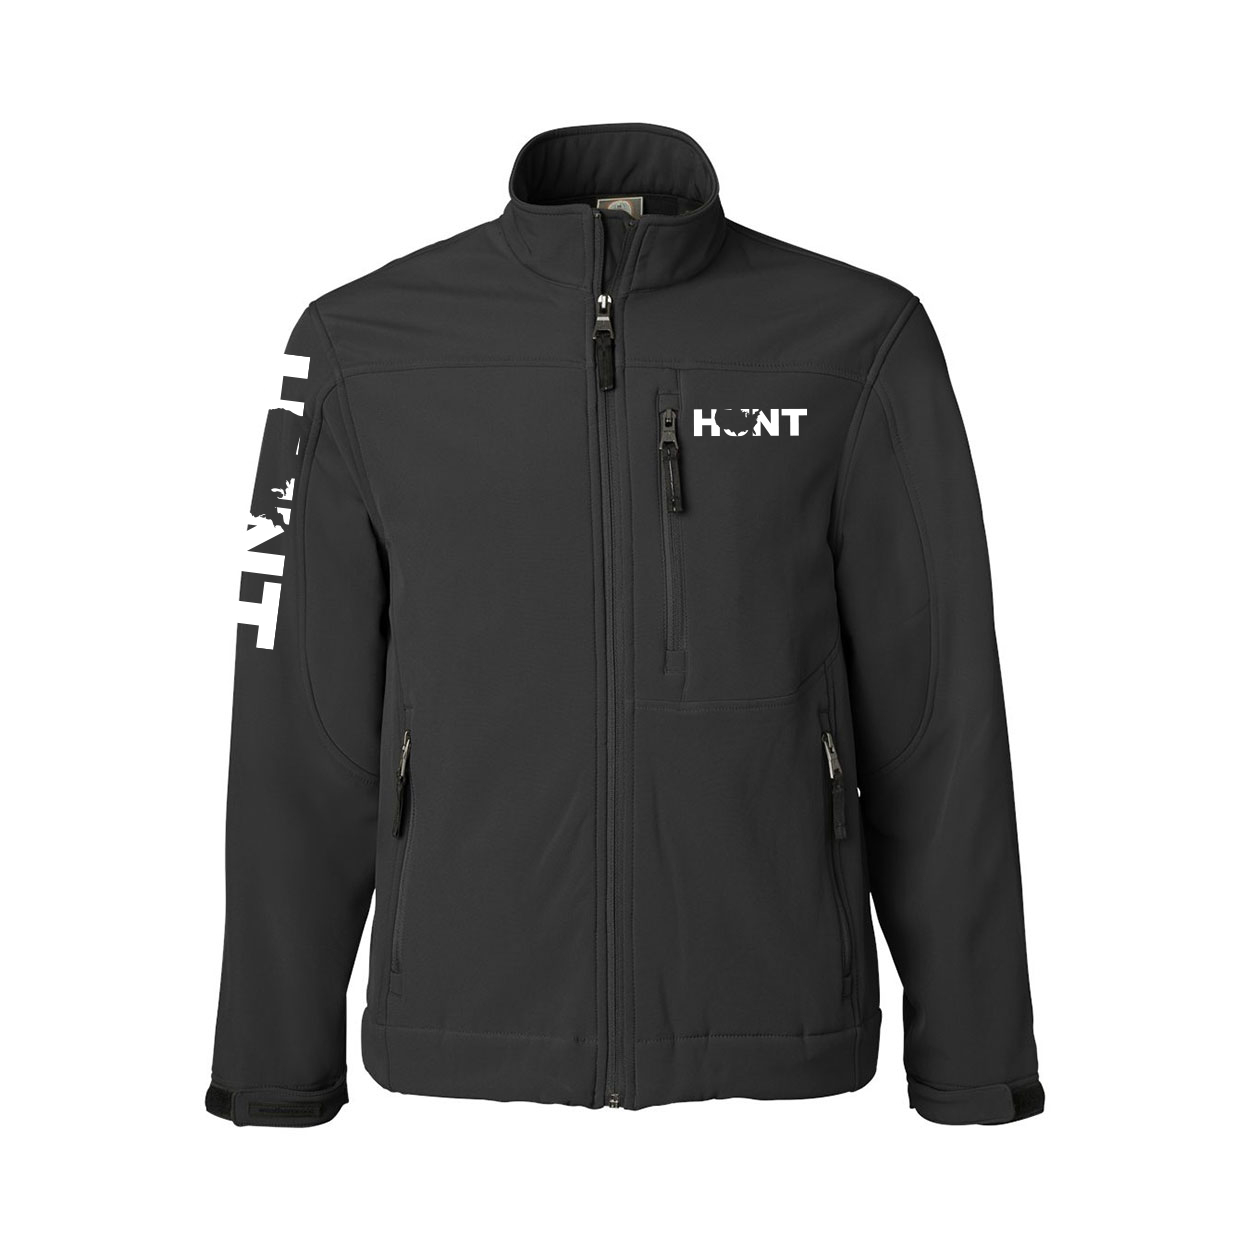 Hunt United States Classic Soft Shell Weatherproof Jacket (White Logo)